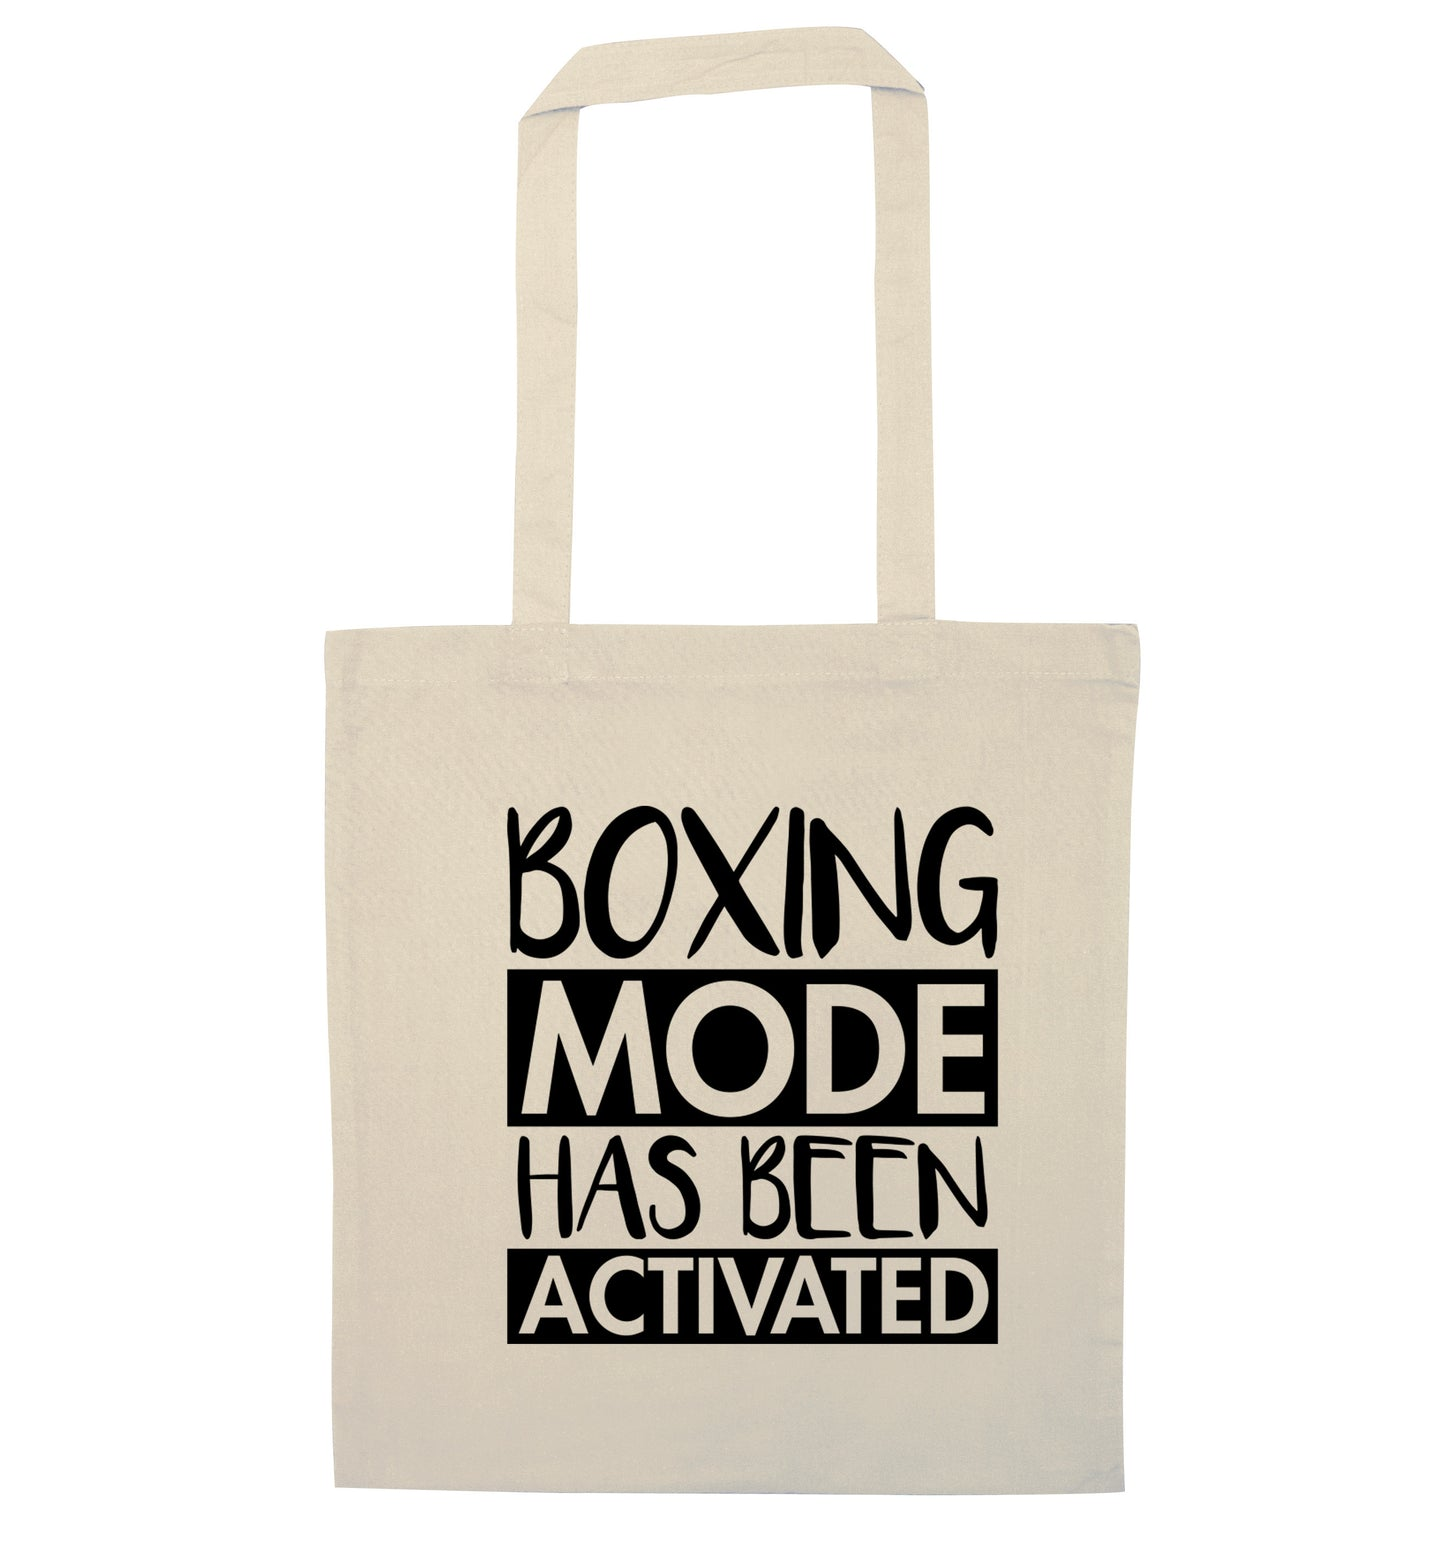 Boxing mode activated natural tote bag